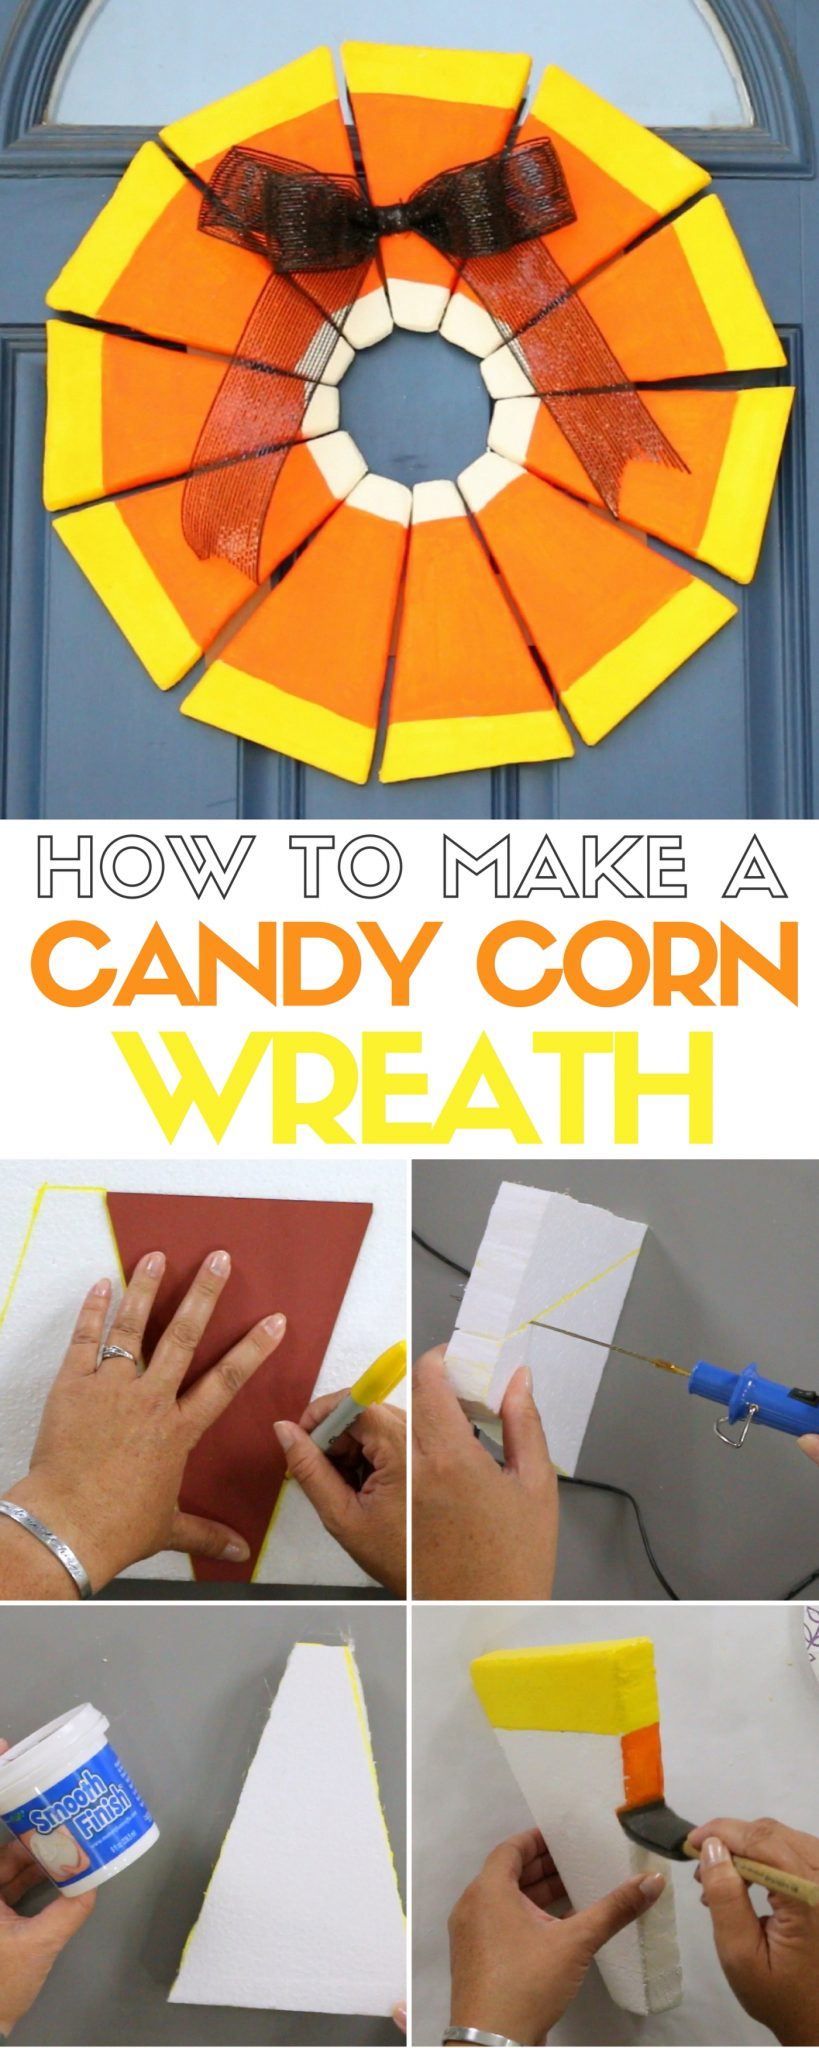 How to make a Candy Corn Wreath using Styrofoam. A simple DIY craft tutorial idea for fun Halloween Decoration or fall home decor.